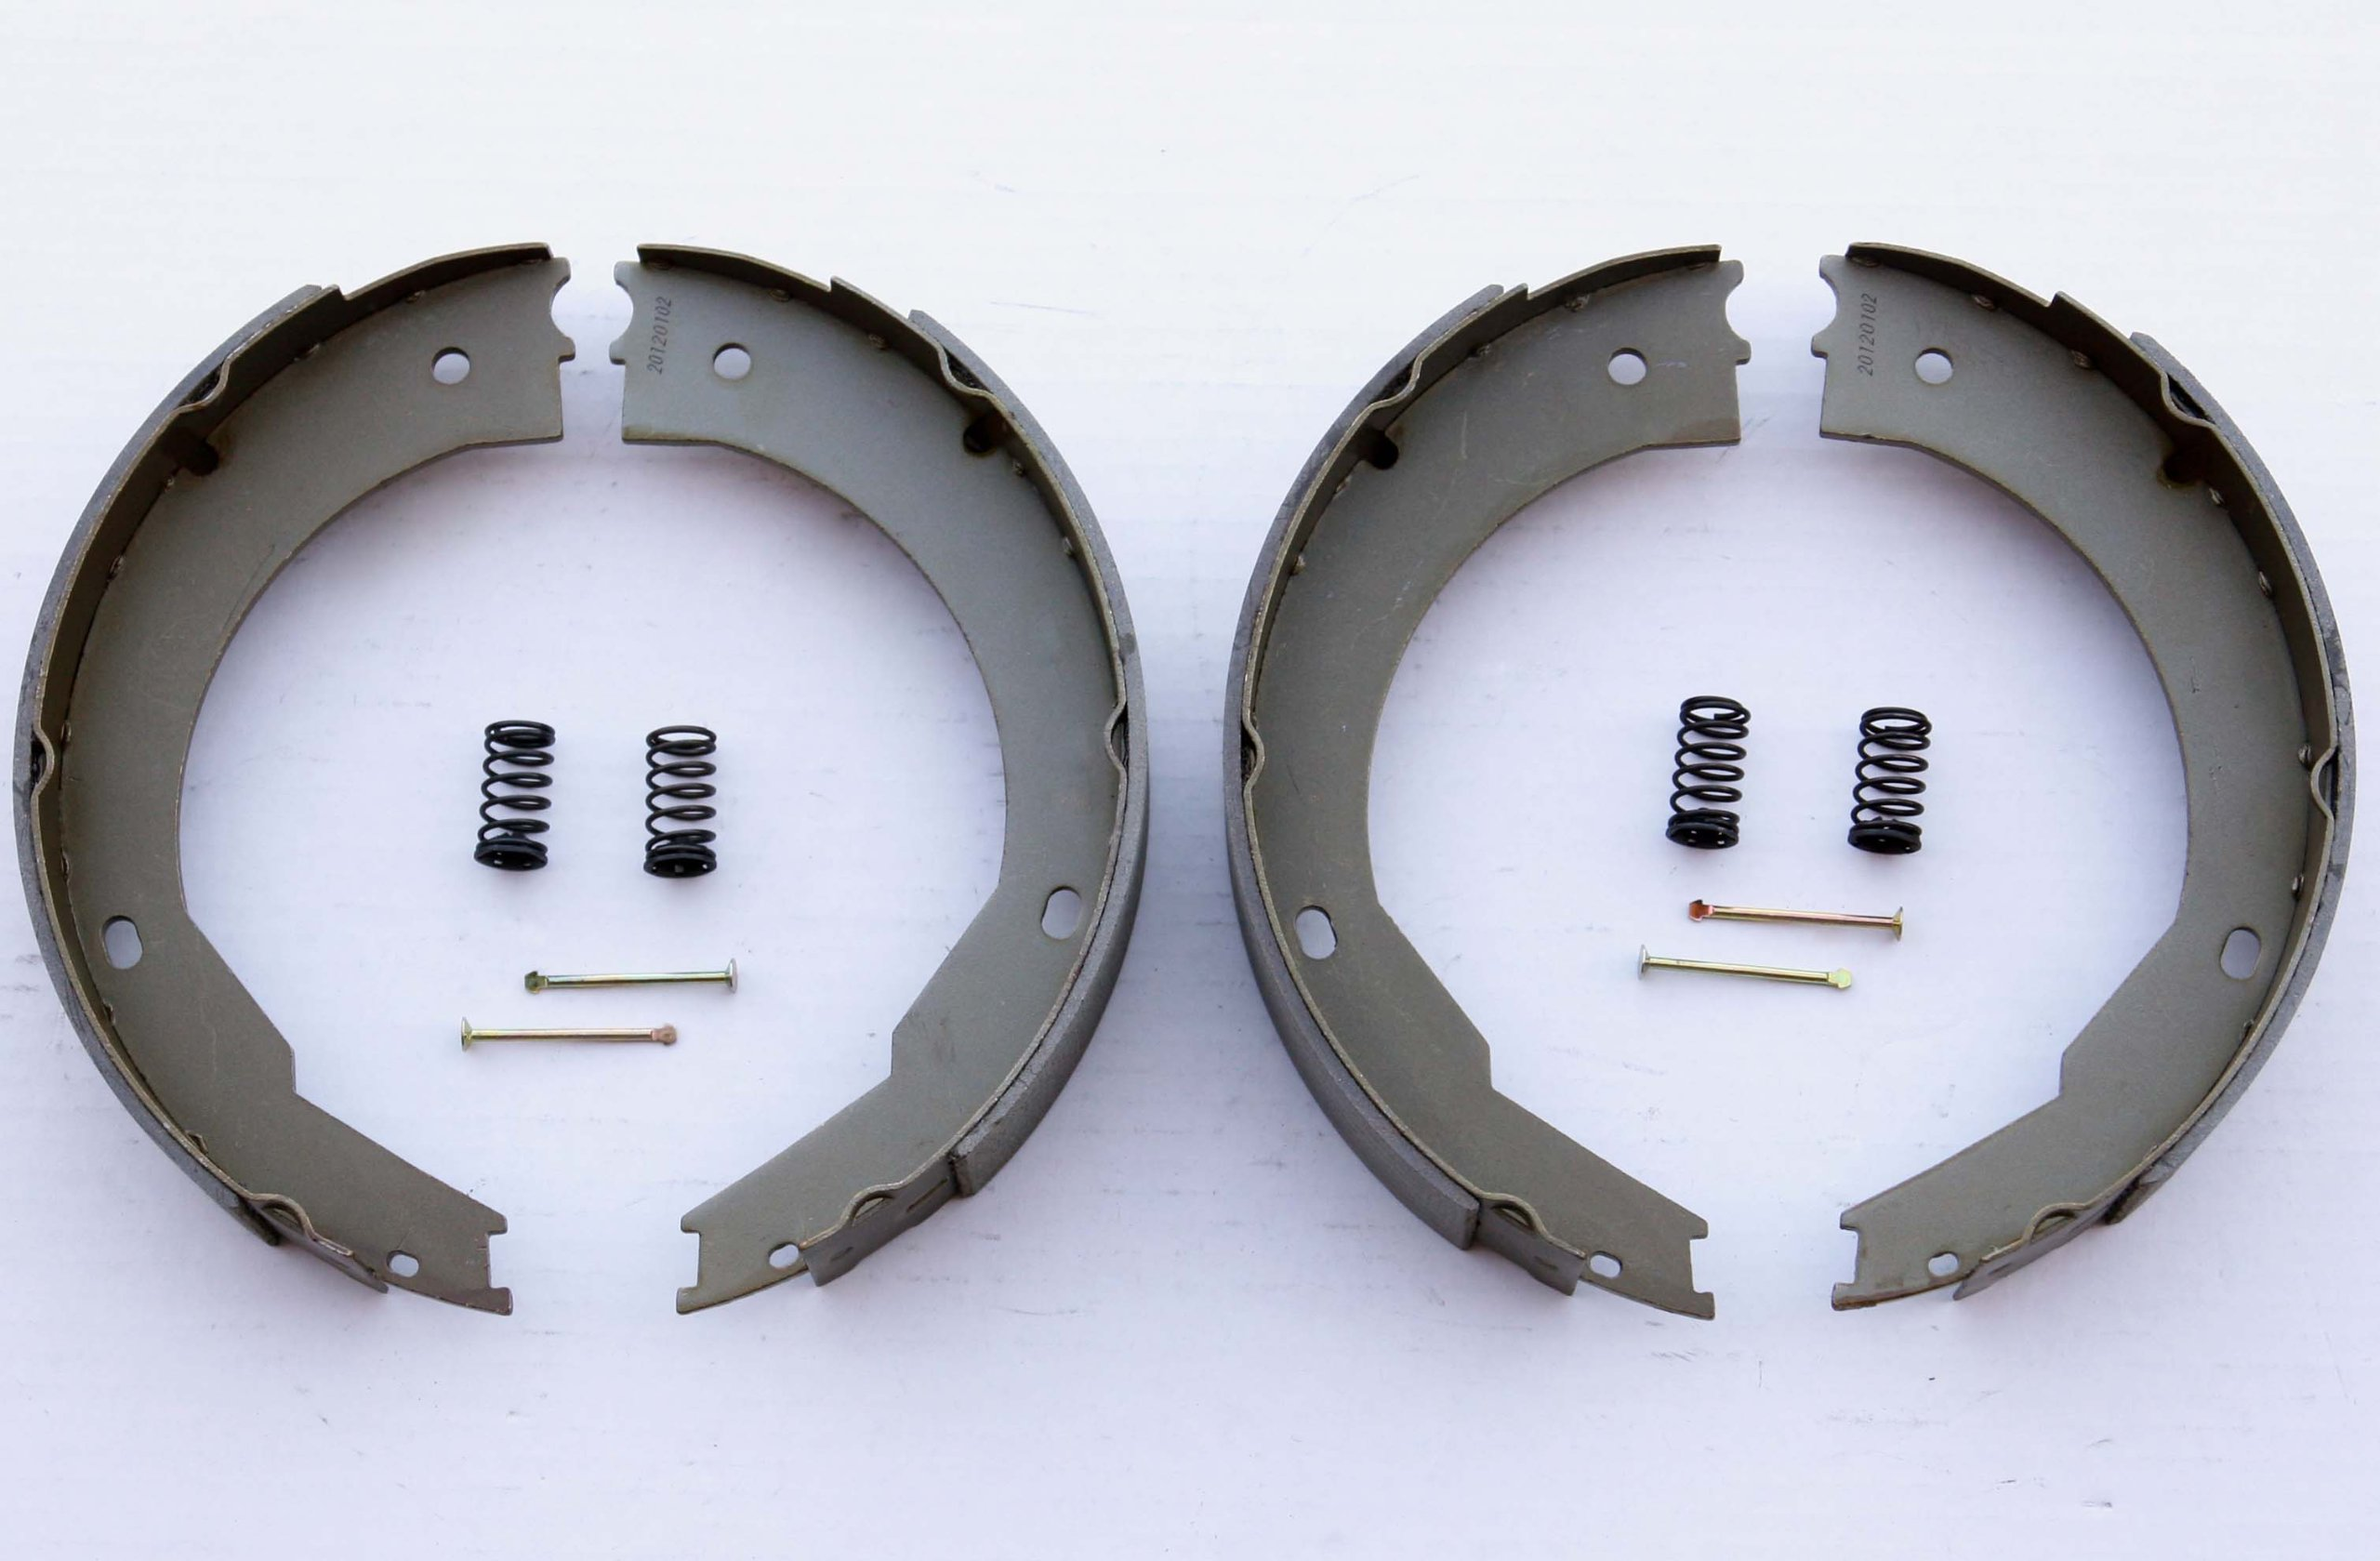 LIBRA 12'' X 2'' trailer brake shoes replacement kits (2 pairs) - 21029/21042 by Libra